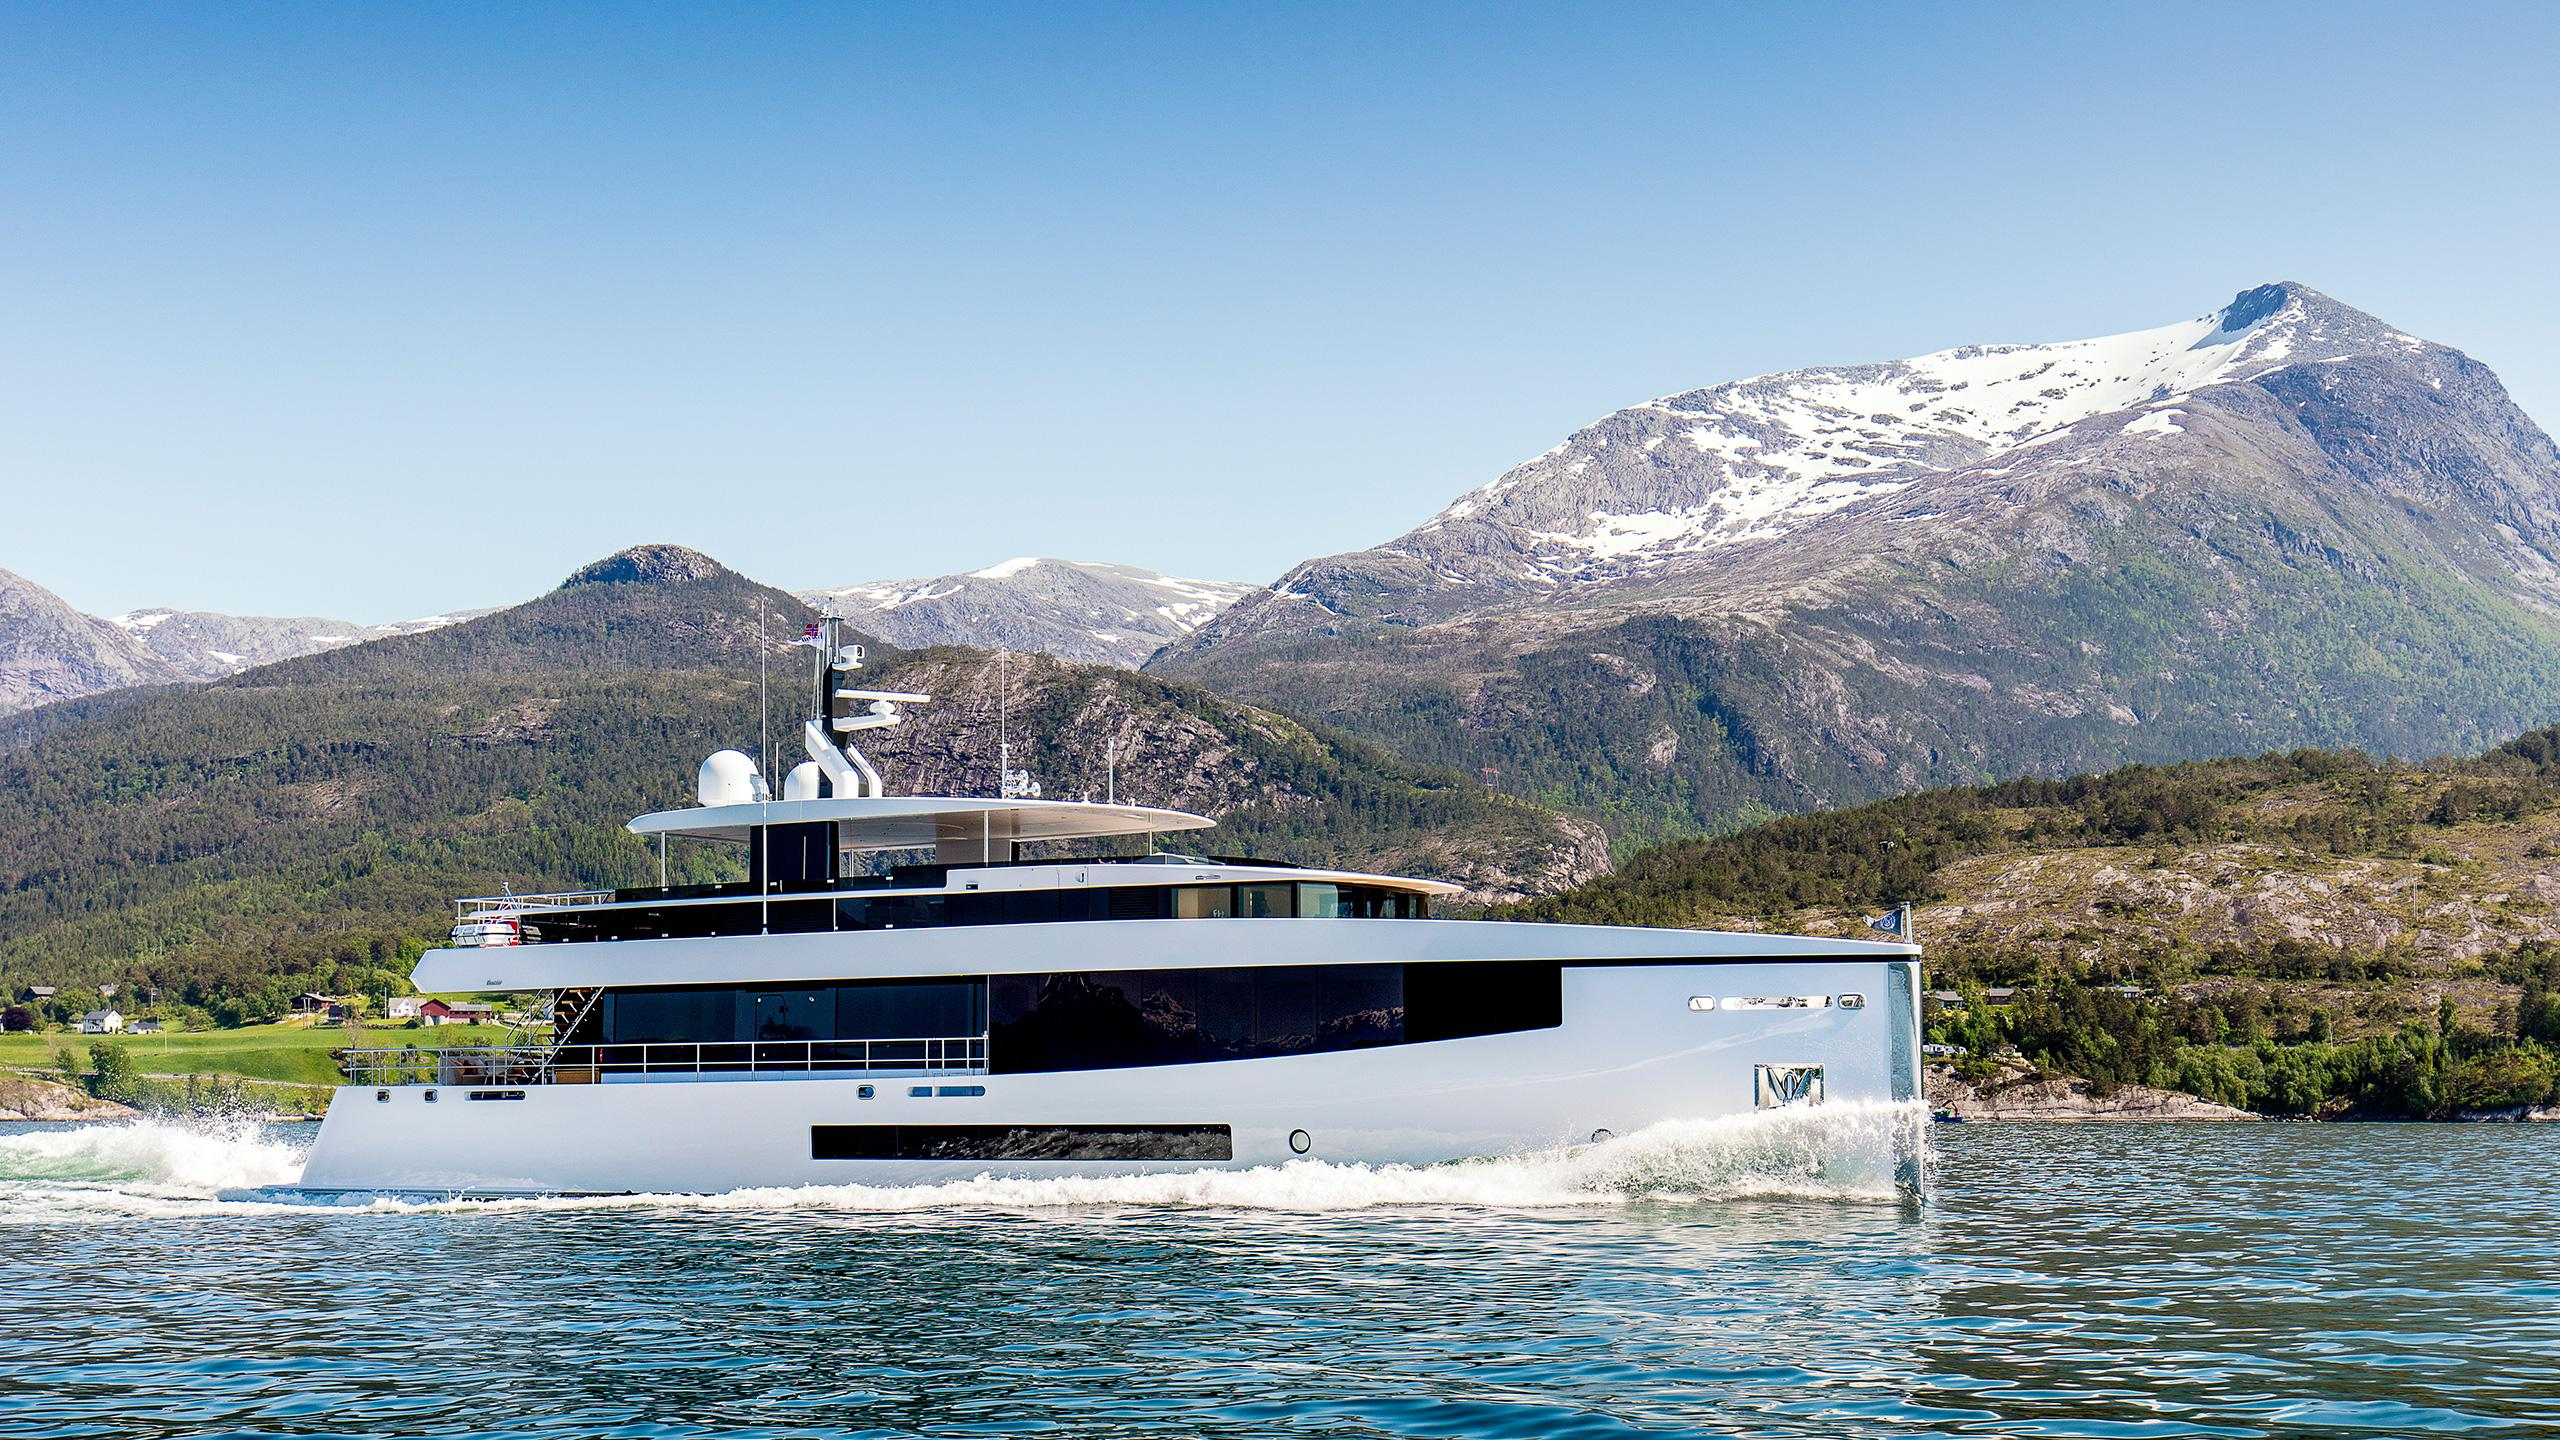 moon-sand-too-super-yacht-feadship-2016-34-metre-running-shot